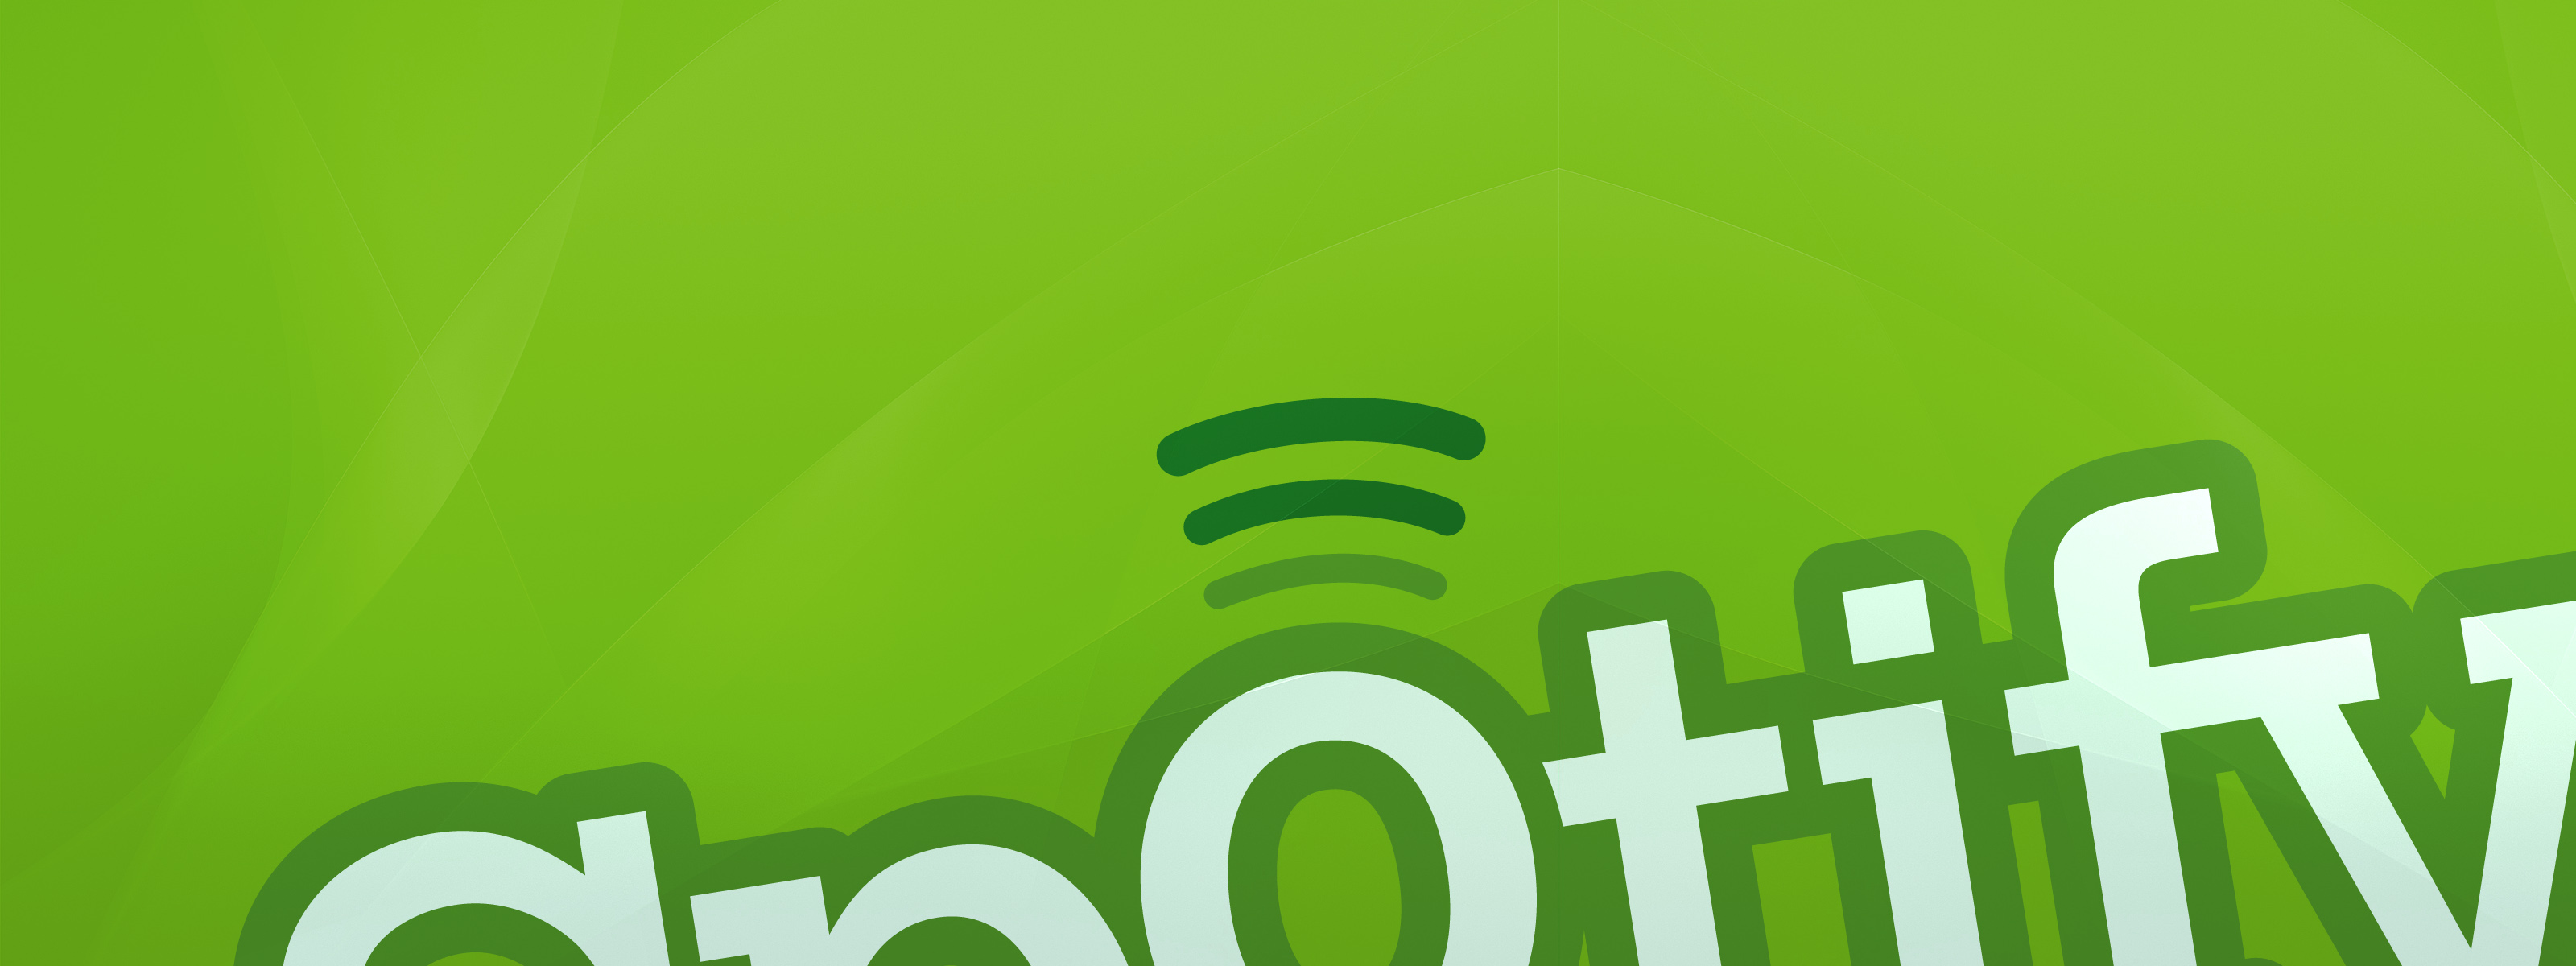 spotify-wallpaper-green-2-6